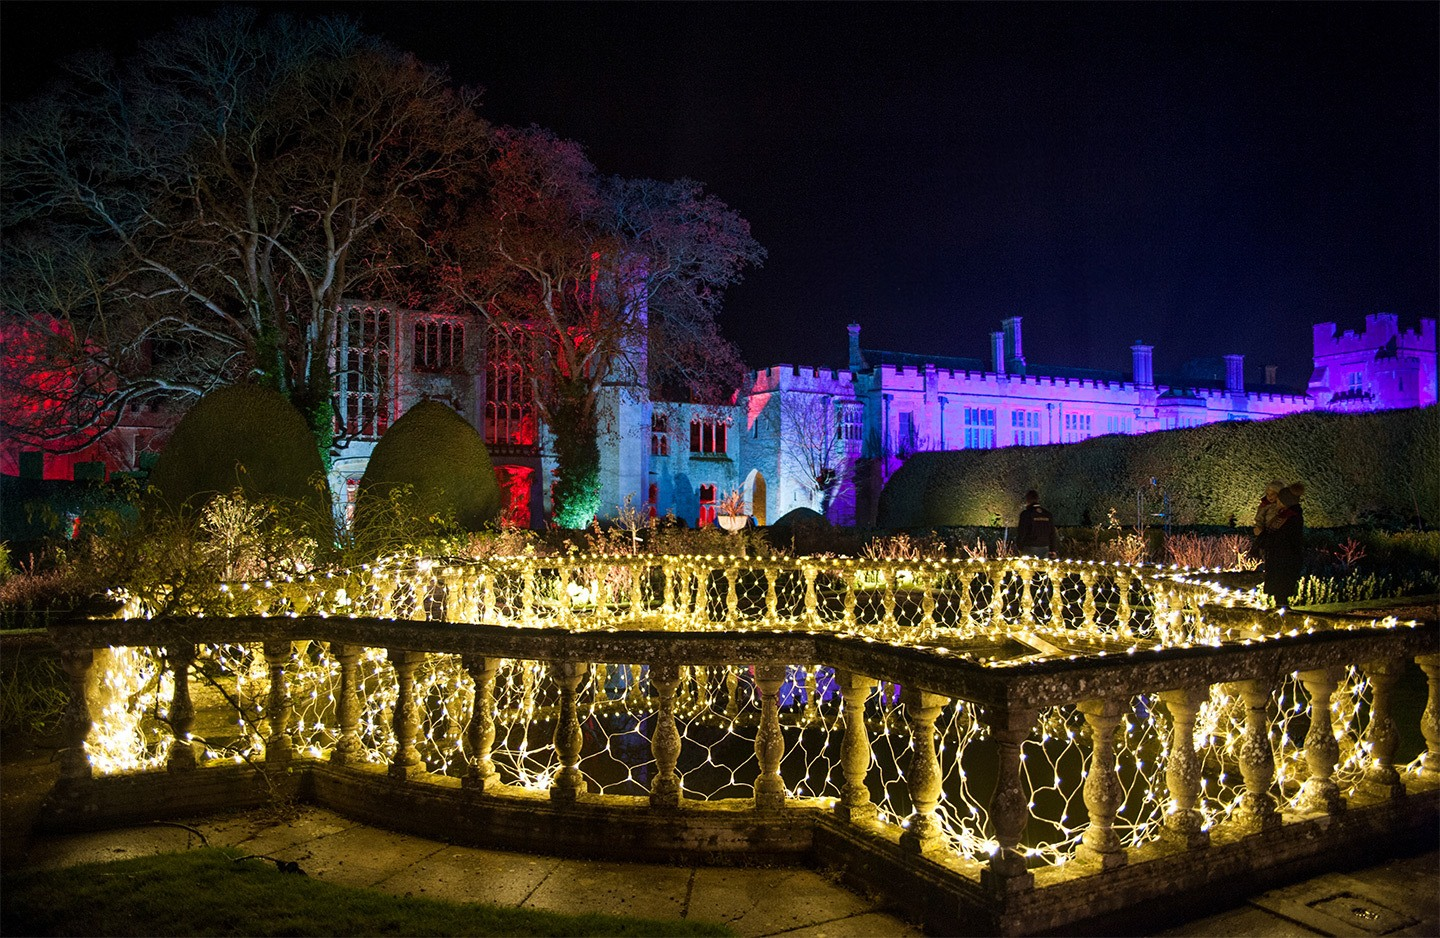 The Spectacle of Light at Sudeley Castle